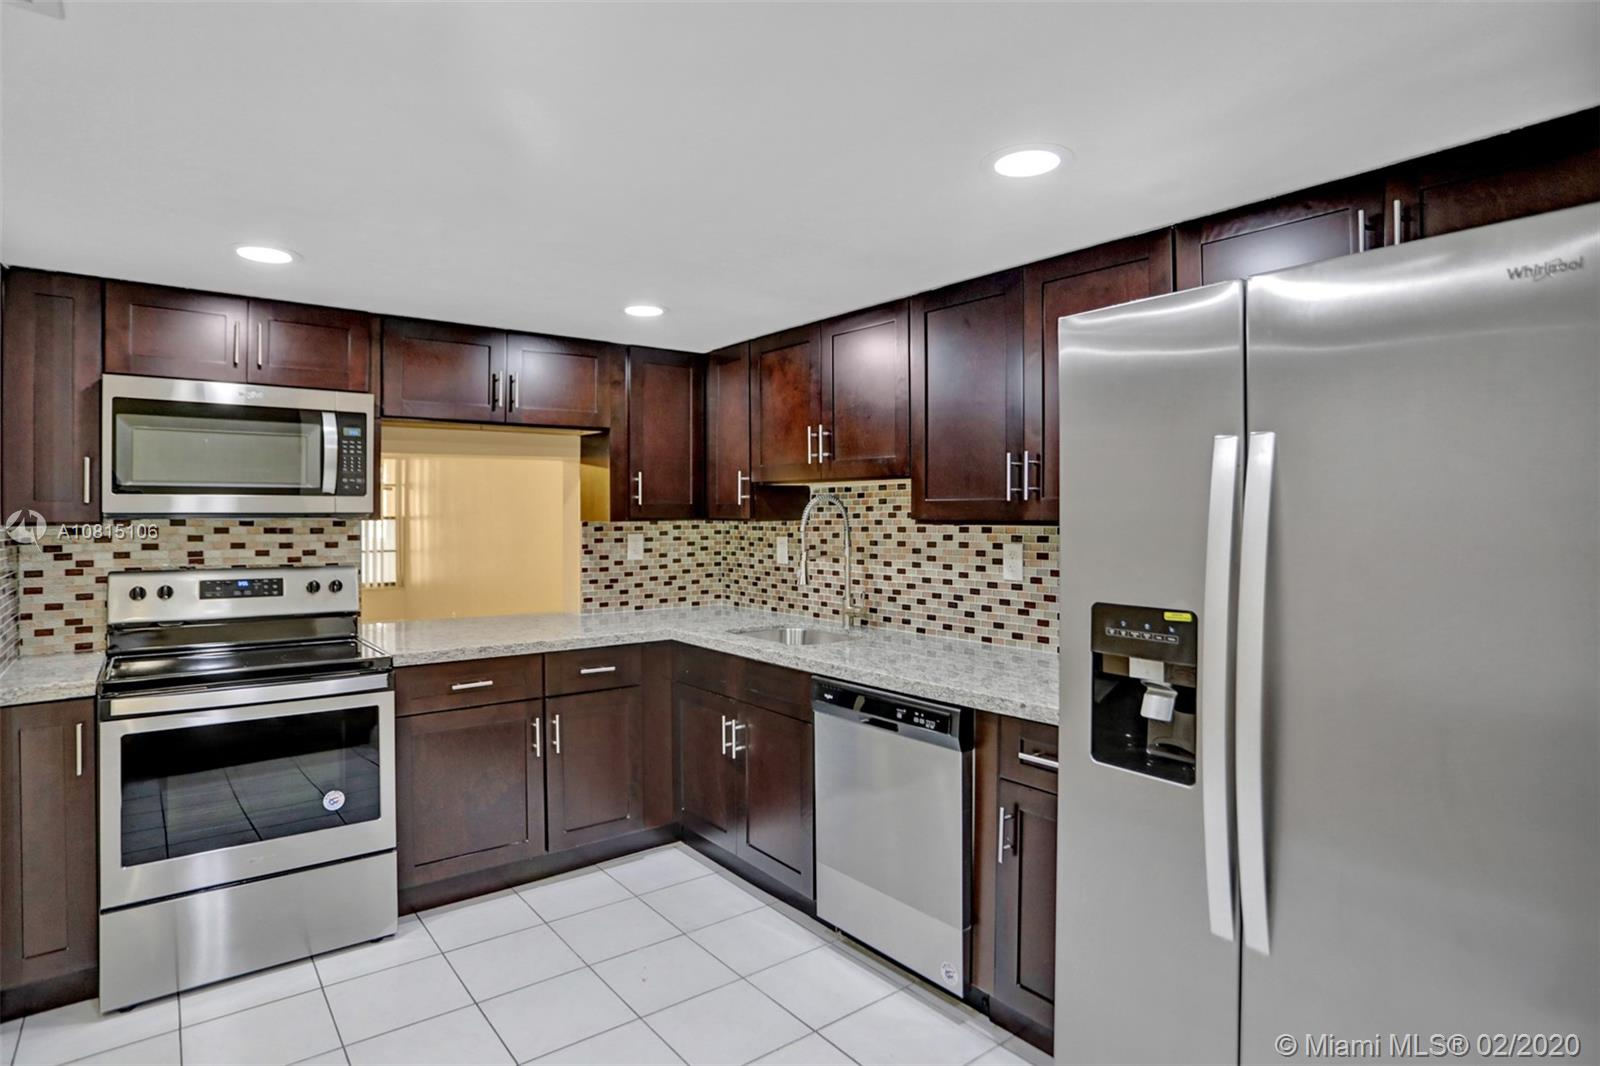 BEAUTIFUL GATED 2/2.5 CORNER UNIT TOWNHOUSE. NEW KITCHEN CABINETS & GRANITE COUNTER TOPS, WHIRLPOOL SS APPLIANCES, UPGRADED BATHROOMS. NEW LAMINATE FLOORING, CLOSET DOORS, SMOKE DETECTORS,CEILING FANS, WINDOW TREATMENTS,OUTLETS & SWITCHES & INTERIOR PAINT. TWO MASTER BEDROOMS & HUGE WALK IN CLOSET. ROOFTOP TERRACE. ONE OF THE NICEST UNITS IN THE AREA. NEW W/D BEING INSTALLED.  HOA FEE INCLUDES ROOF REPAIRS.  NEW INCOMING IMPROVEMENTS: NEW ACCESS ROAD,TENNIS COURTS. YEAR ROUND HEATED SWIMMING POOL, SAUNA, GYM & YOUTH PLAYGROUNDS. SEE BROKER REMARKS!  RING ALARM SYSTEM & CAMERAS DO NOT CONVEY.